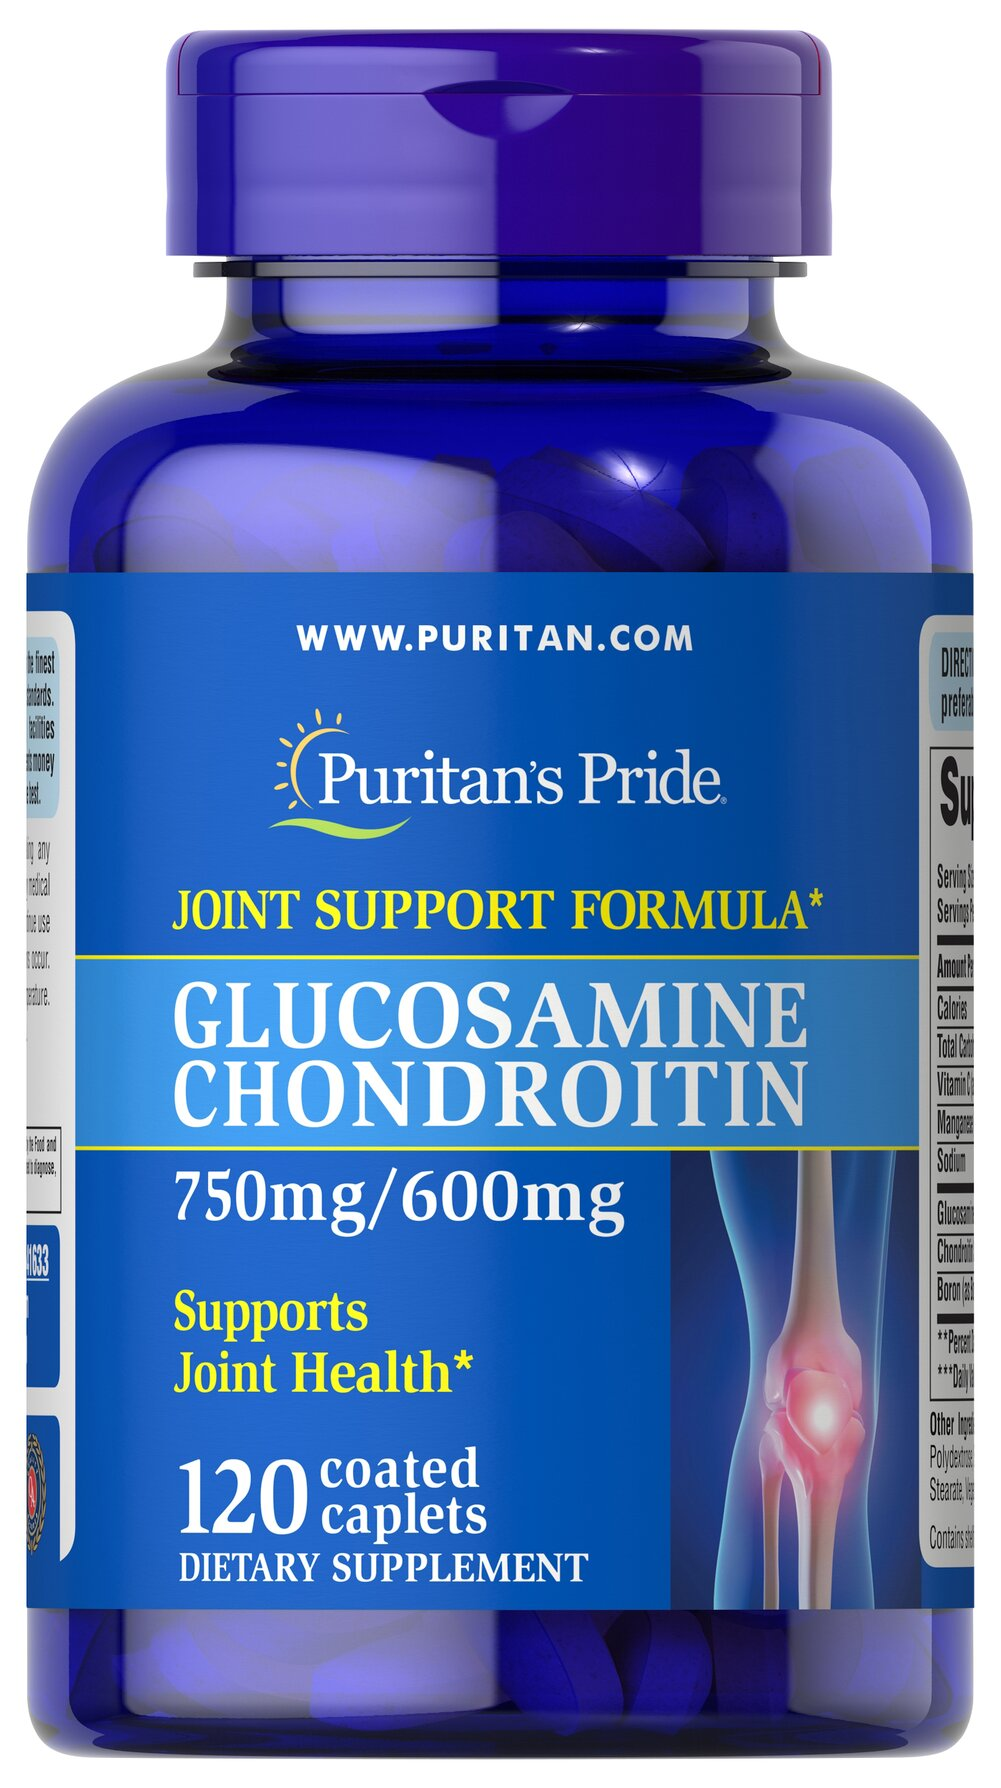 Triple Strength Glucosamine Chondroitin 750 mg/600 mg <p>Glucosamine is a key structural component in cartilage and acts as a lubricant**</p><p>Chondroitin acts as a lubricant and is an important molecular component of glycosaminoglycans**</p><p>One serving of Triple Strength Glucosamine Chondroitin helps promote comfortable joint movement and two caplets provide 1500 mg Glucosamine and 1200 mg Chondroitin.</p> 120 Caplets 750 mg/600 mg $44.99